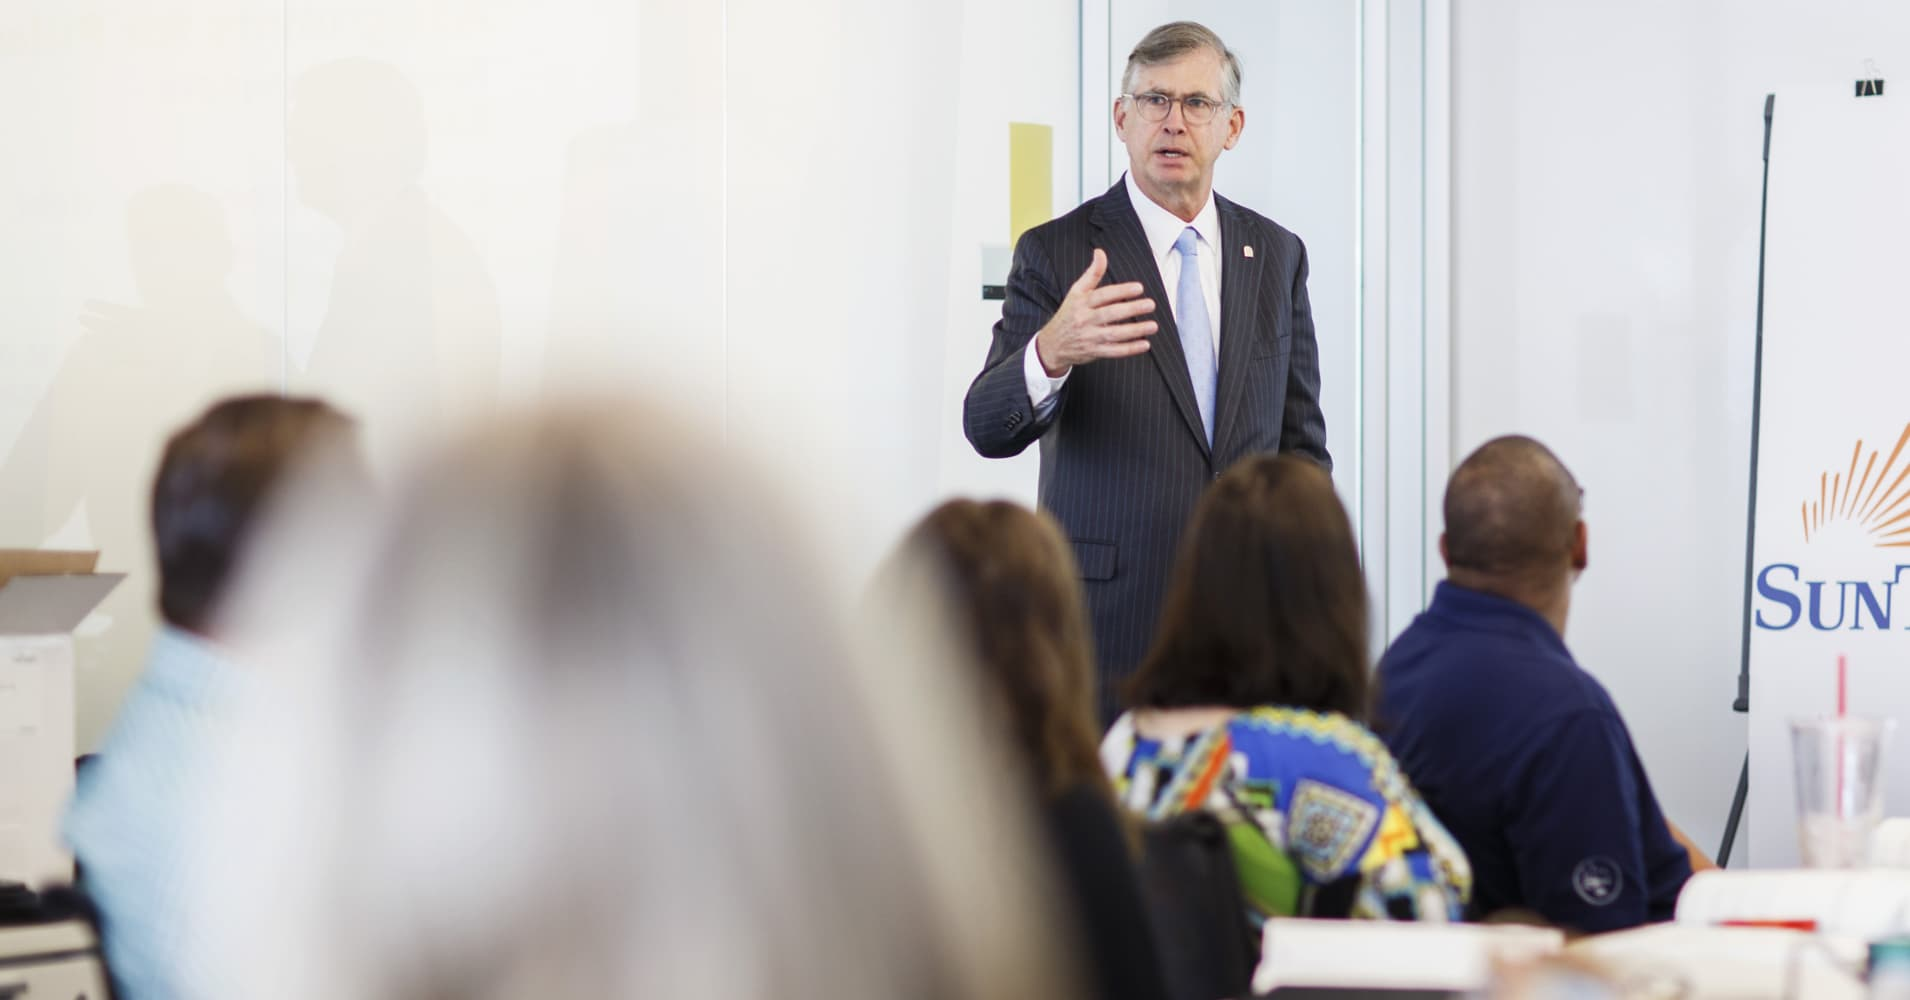 Bill Rogers, chief executive of SunTrust Banks, speaks to employees learning to be trainers for an employee financial wellness program, in Atlanta, June 23, 2017.